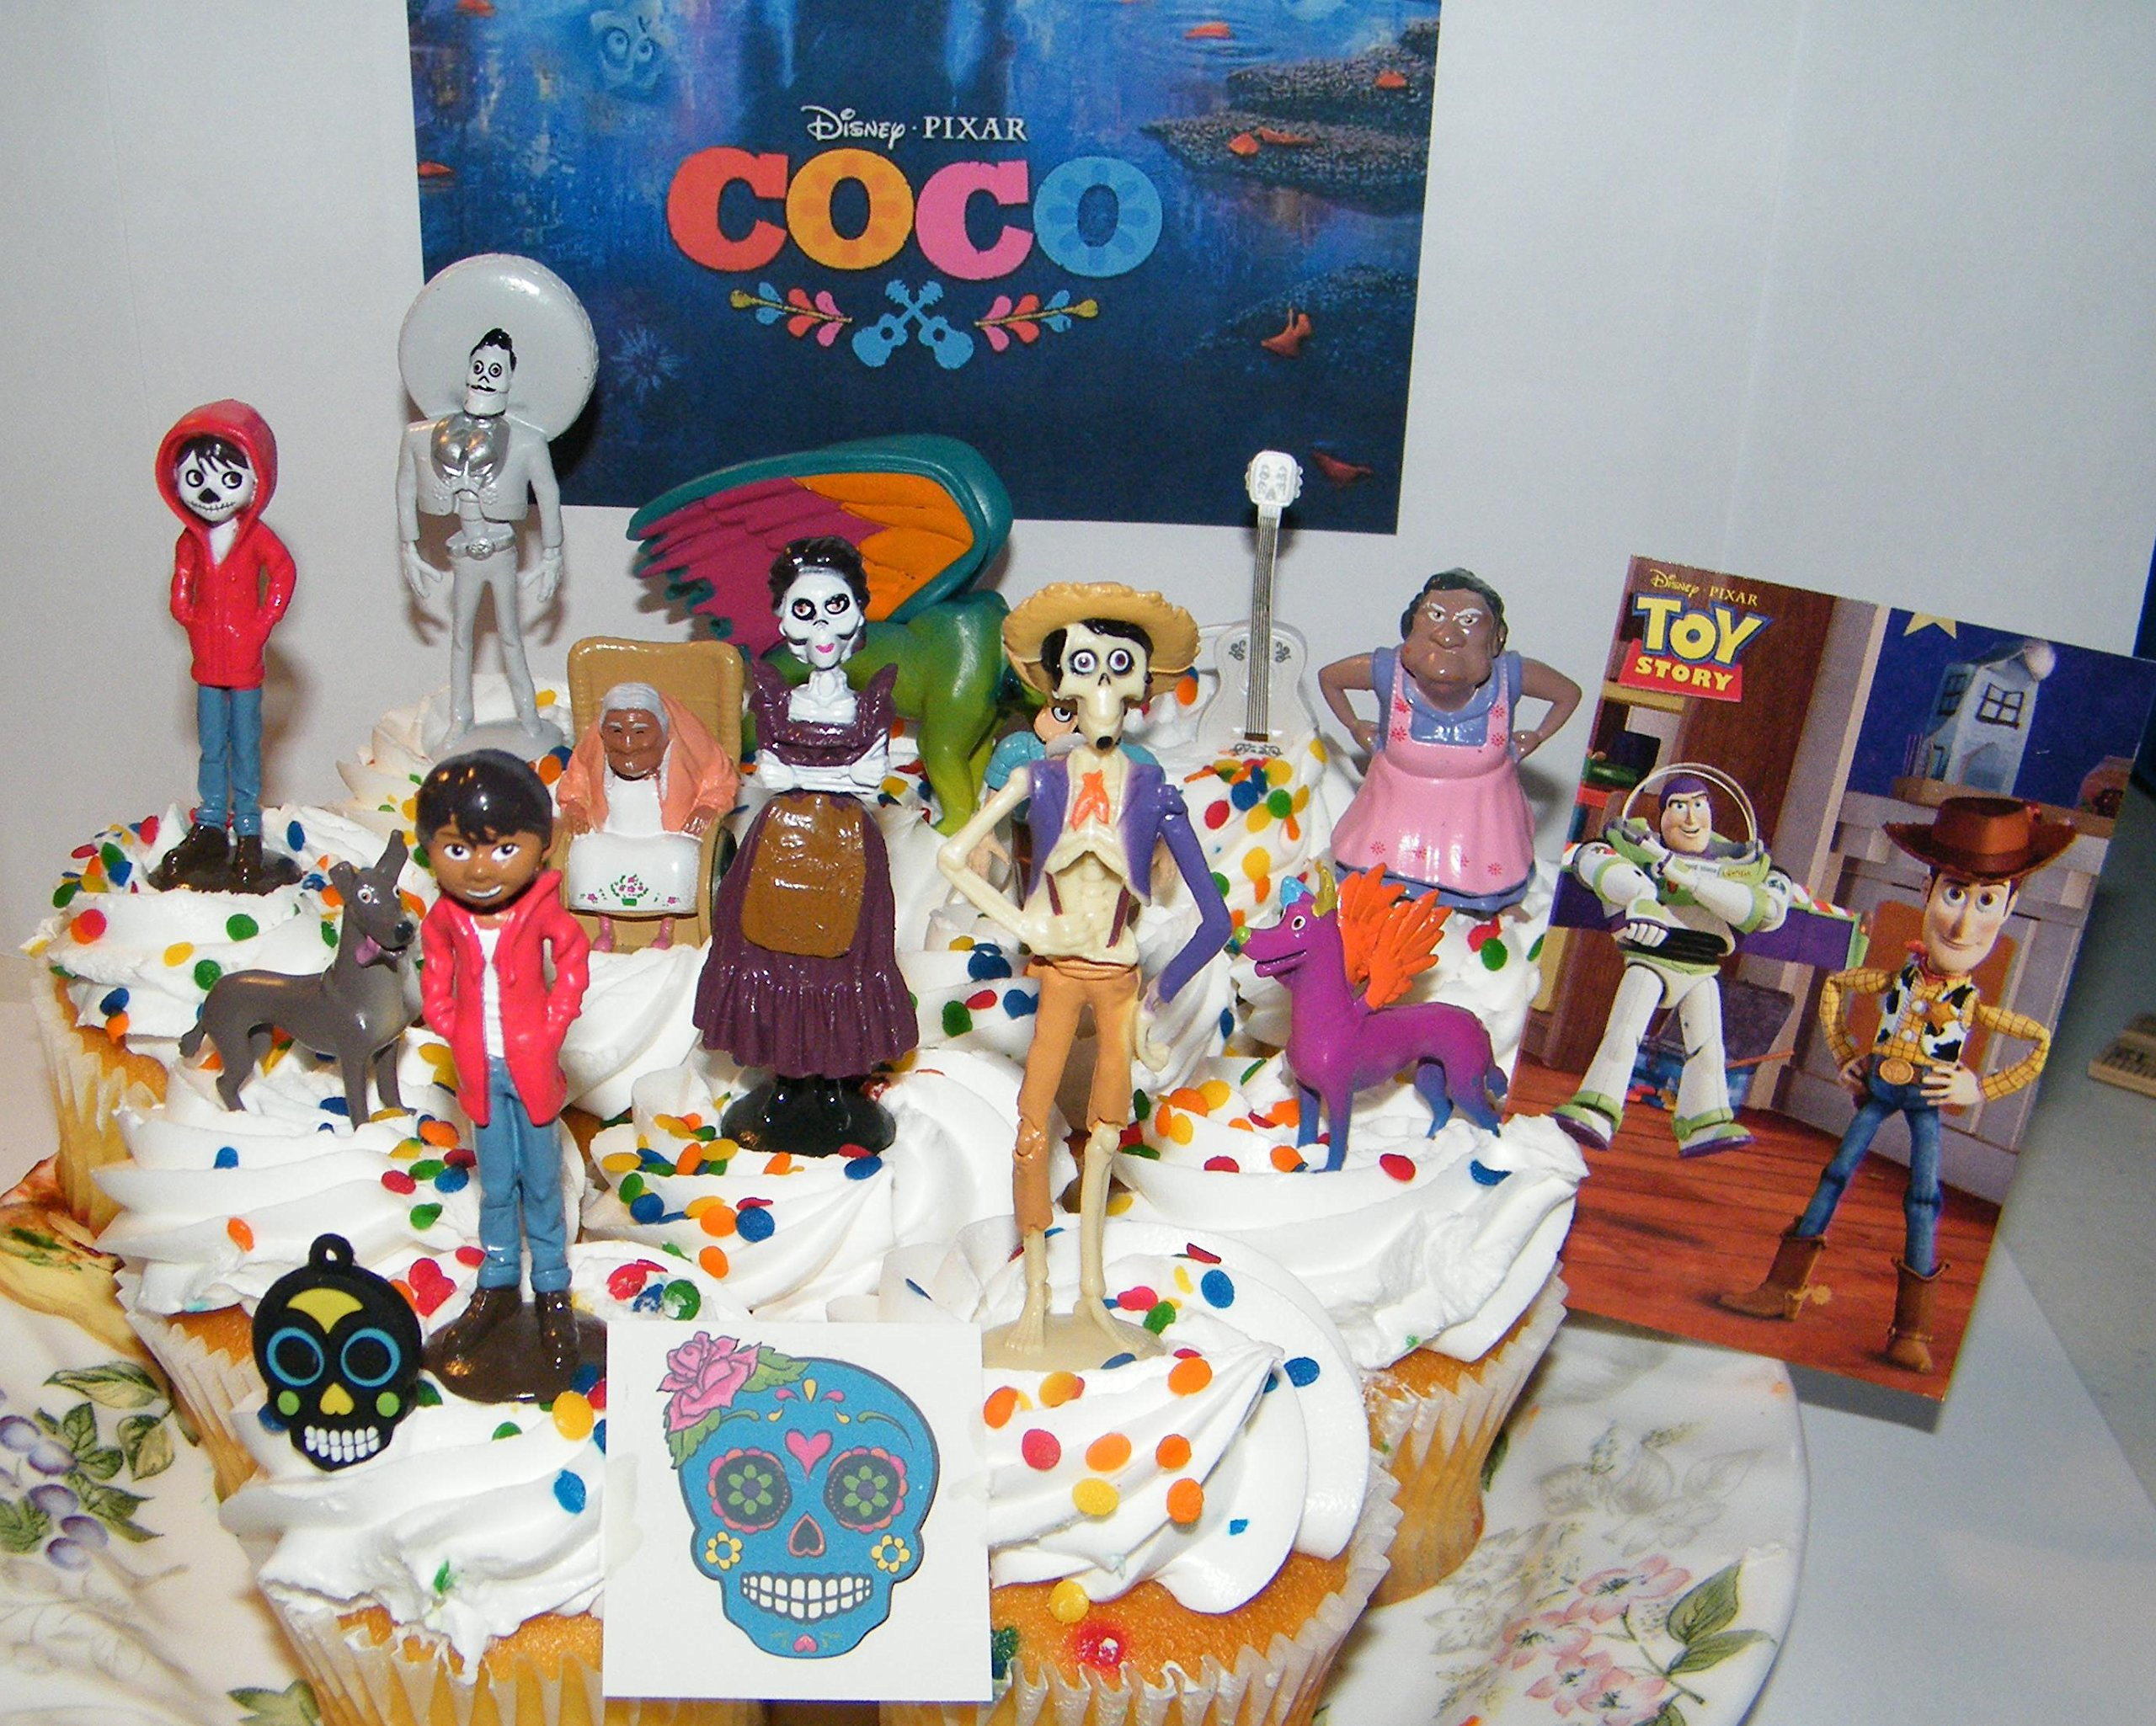 Disney Coco Movie Deluxe Cake Toppers Cupcake Decorations Set of 15 with 12 Figures, Charm, Tattoo and Sticker featuring Miguel, Mama Imelda, Spirit Guide and More! by B.B. Inc